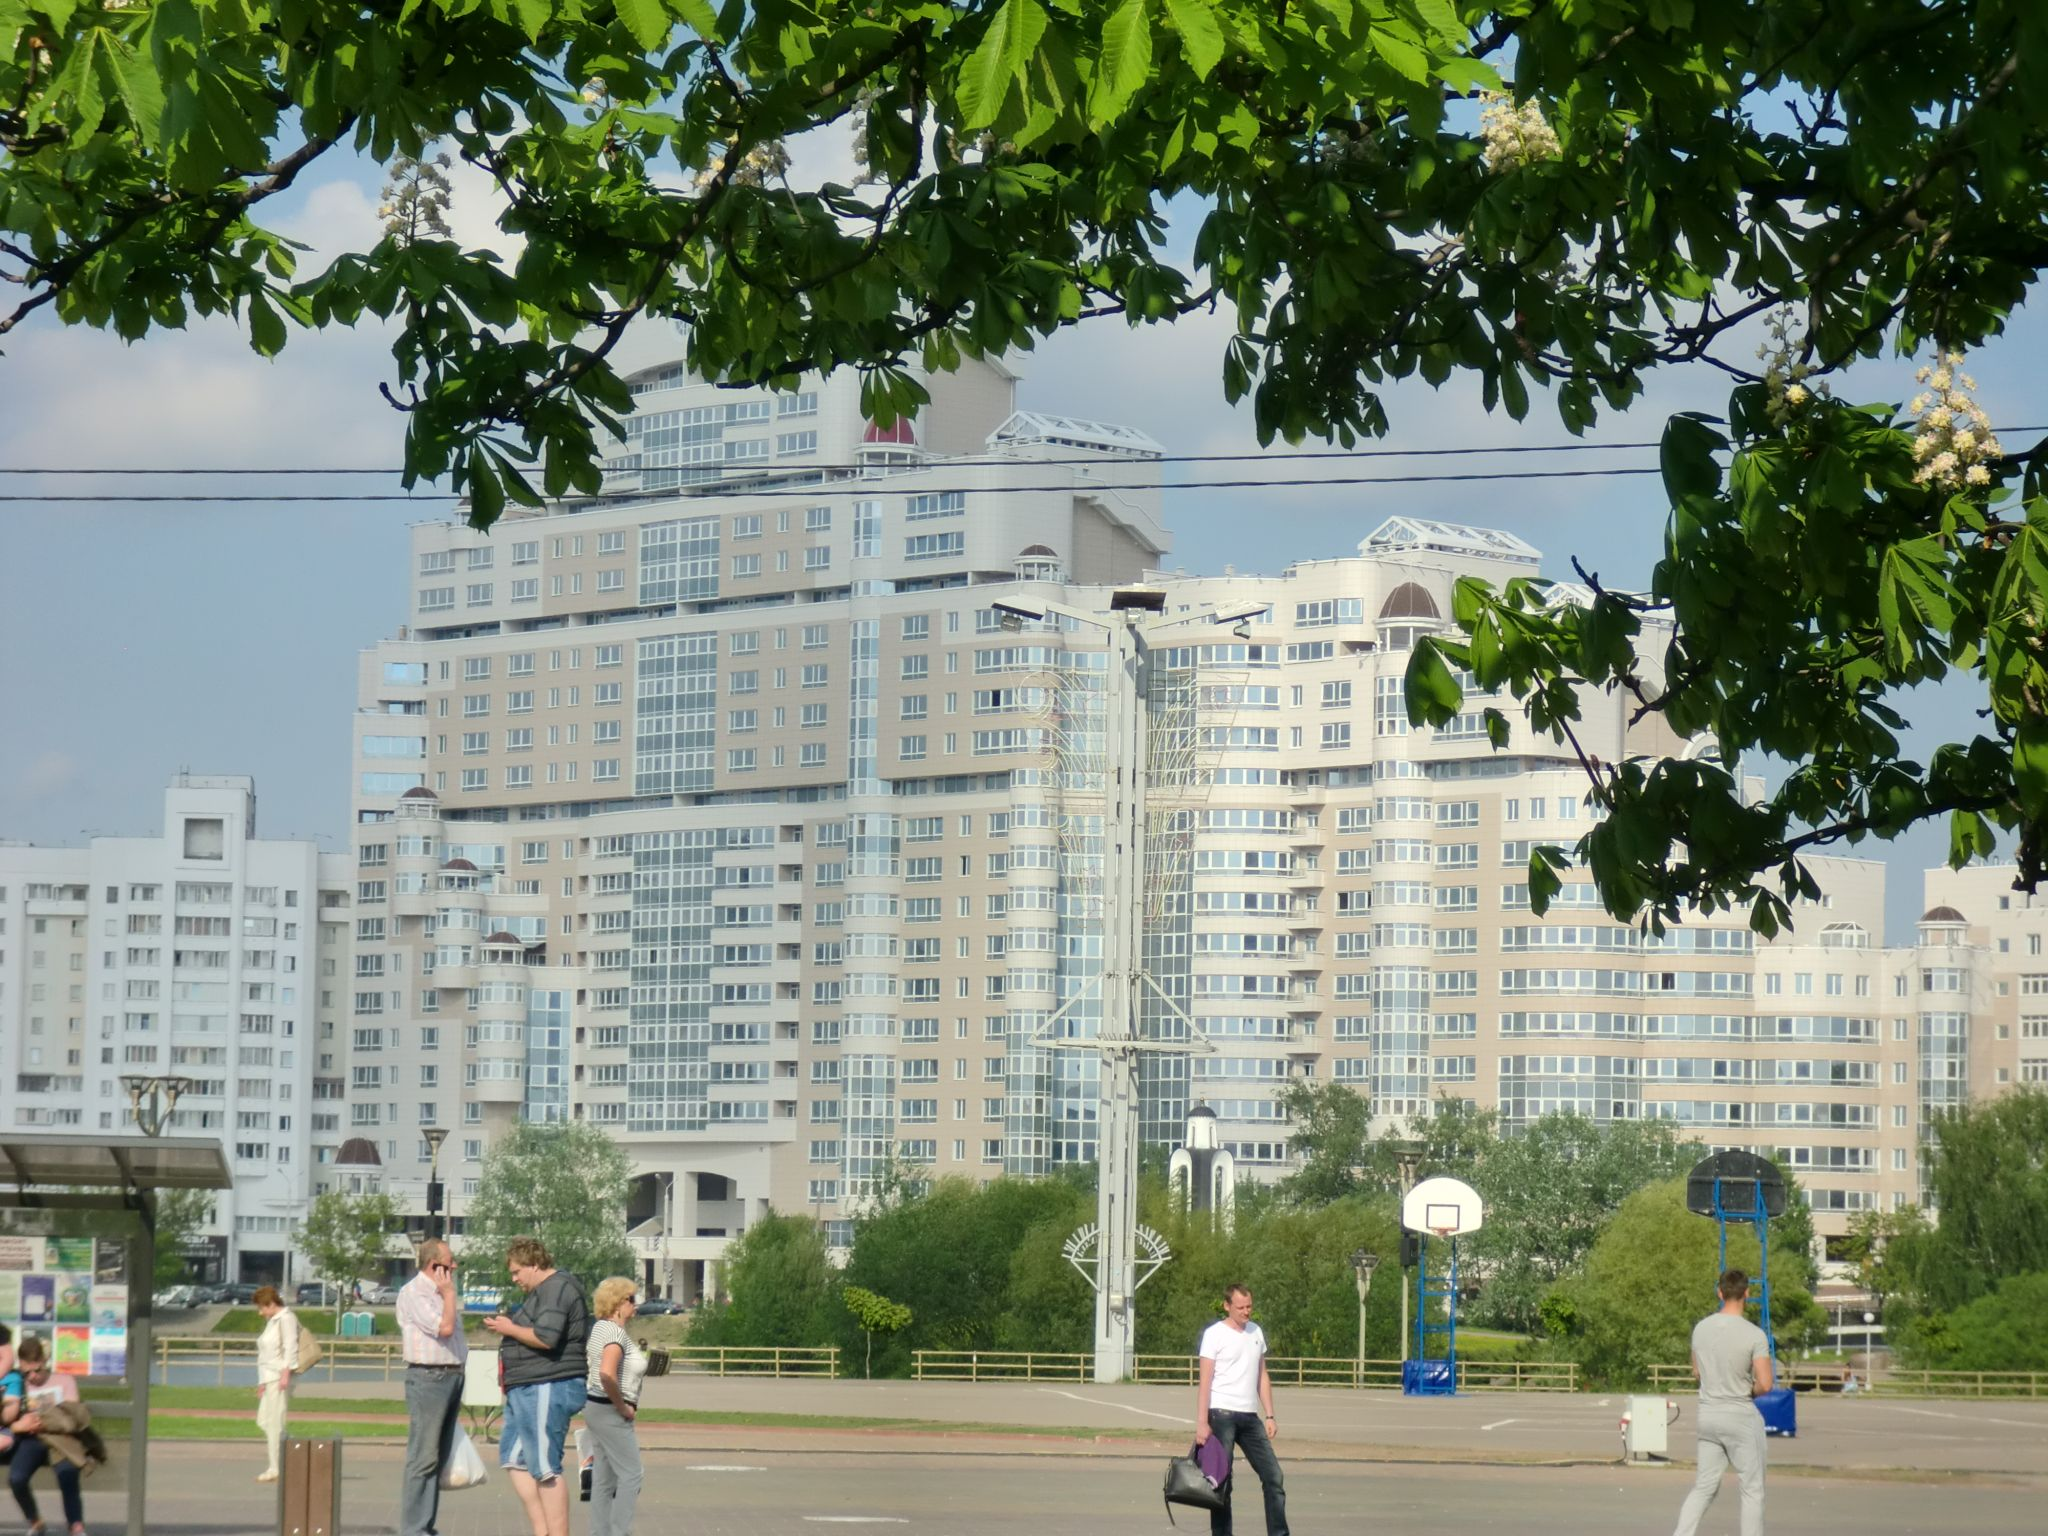 Minsk city 26 - Minsk, 1 amazing city you have to see